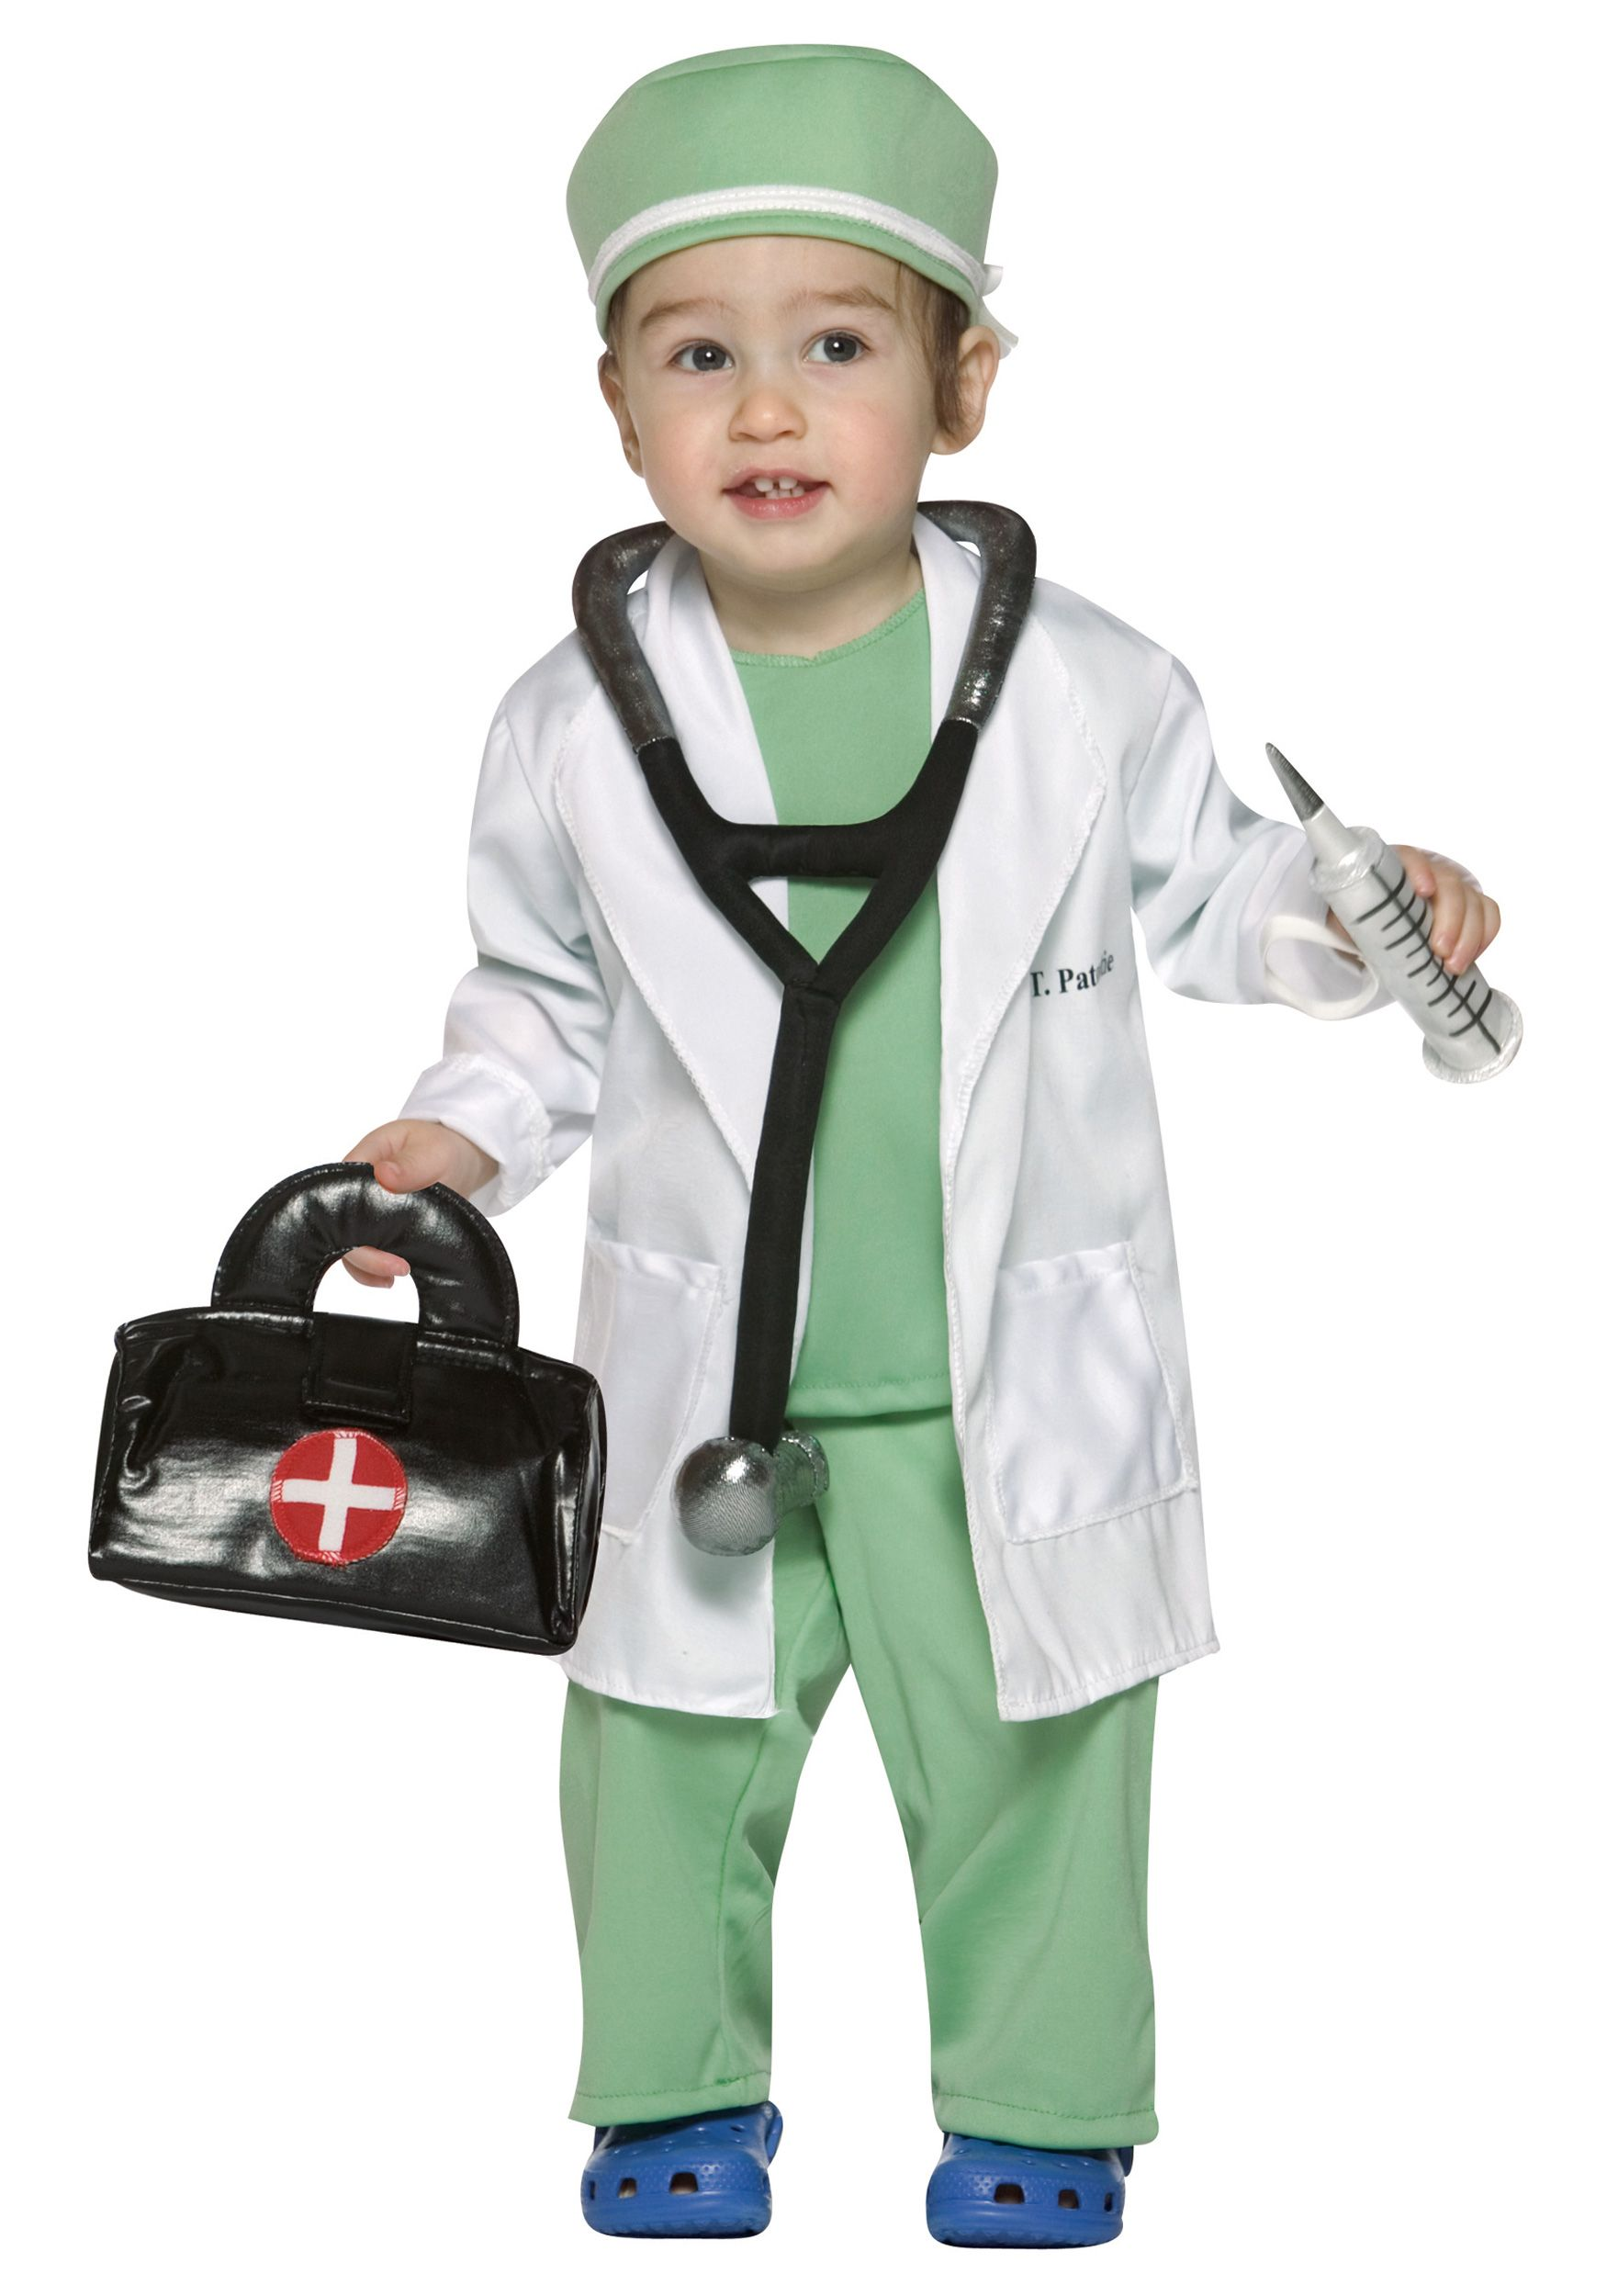 toddler future doctor costume child halloween - Kids Doctor Halloween Costume